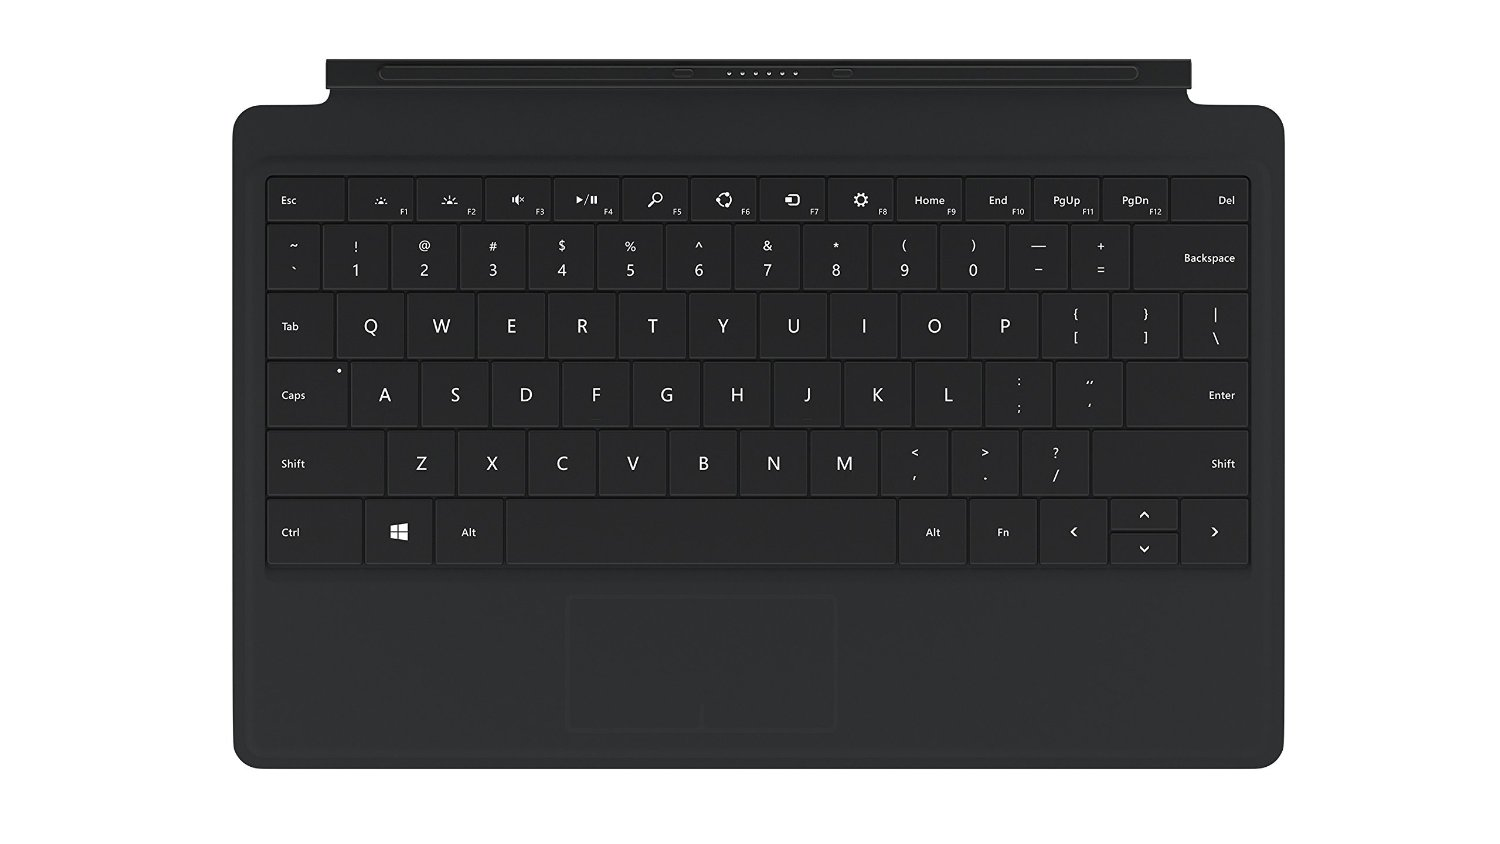 microsoft type cover how to put key back in